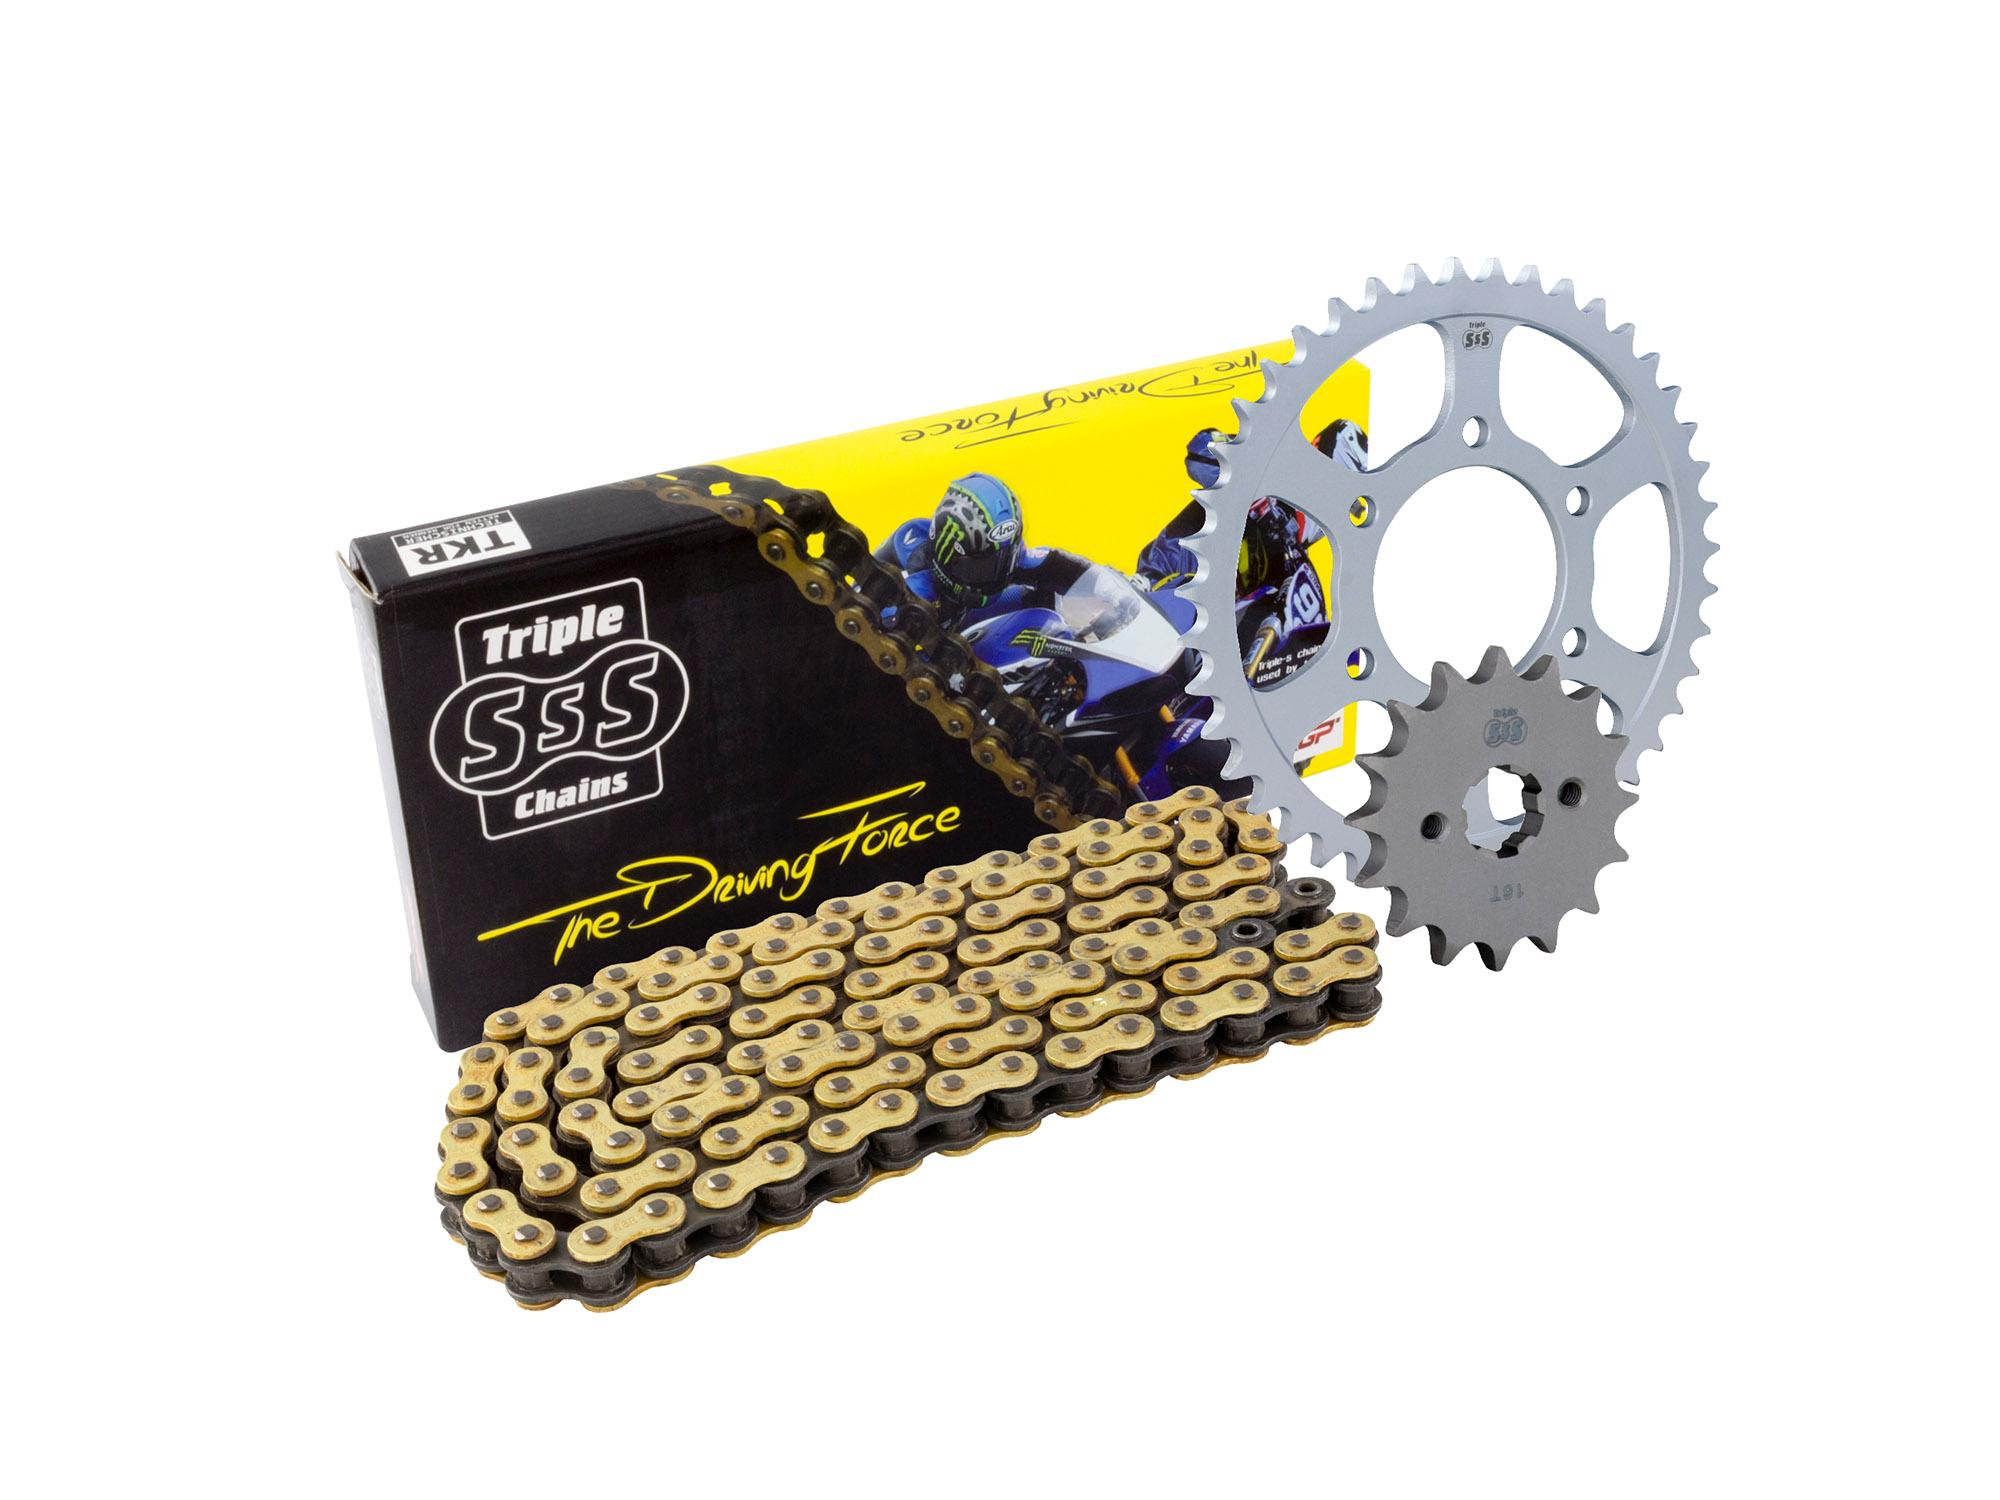 Suzuki GSX-R1100 WP/WR 93-94 Chain & Sprocket Kit: 15T Front, 42T Rear, HD O-Ring Gold Chain 530H 114 Link